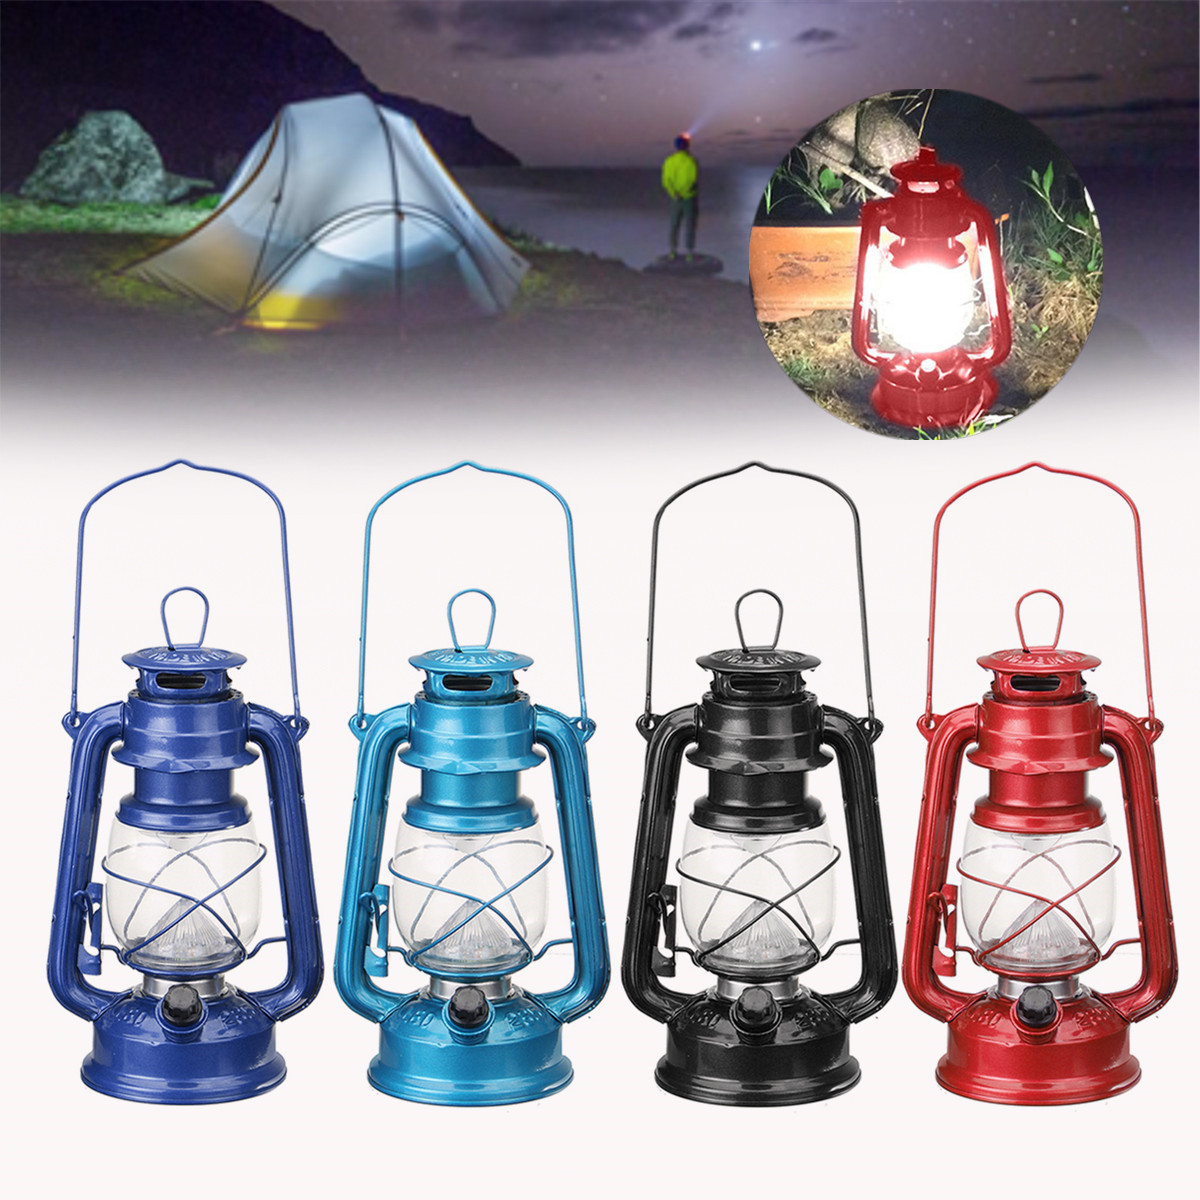 Us 13 21 23 Off Vintage Style Portable 15 Led Lantern Battery Operated Indoor Outdoor Garden Fishing Camping Hikingtent Light In Lanterns